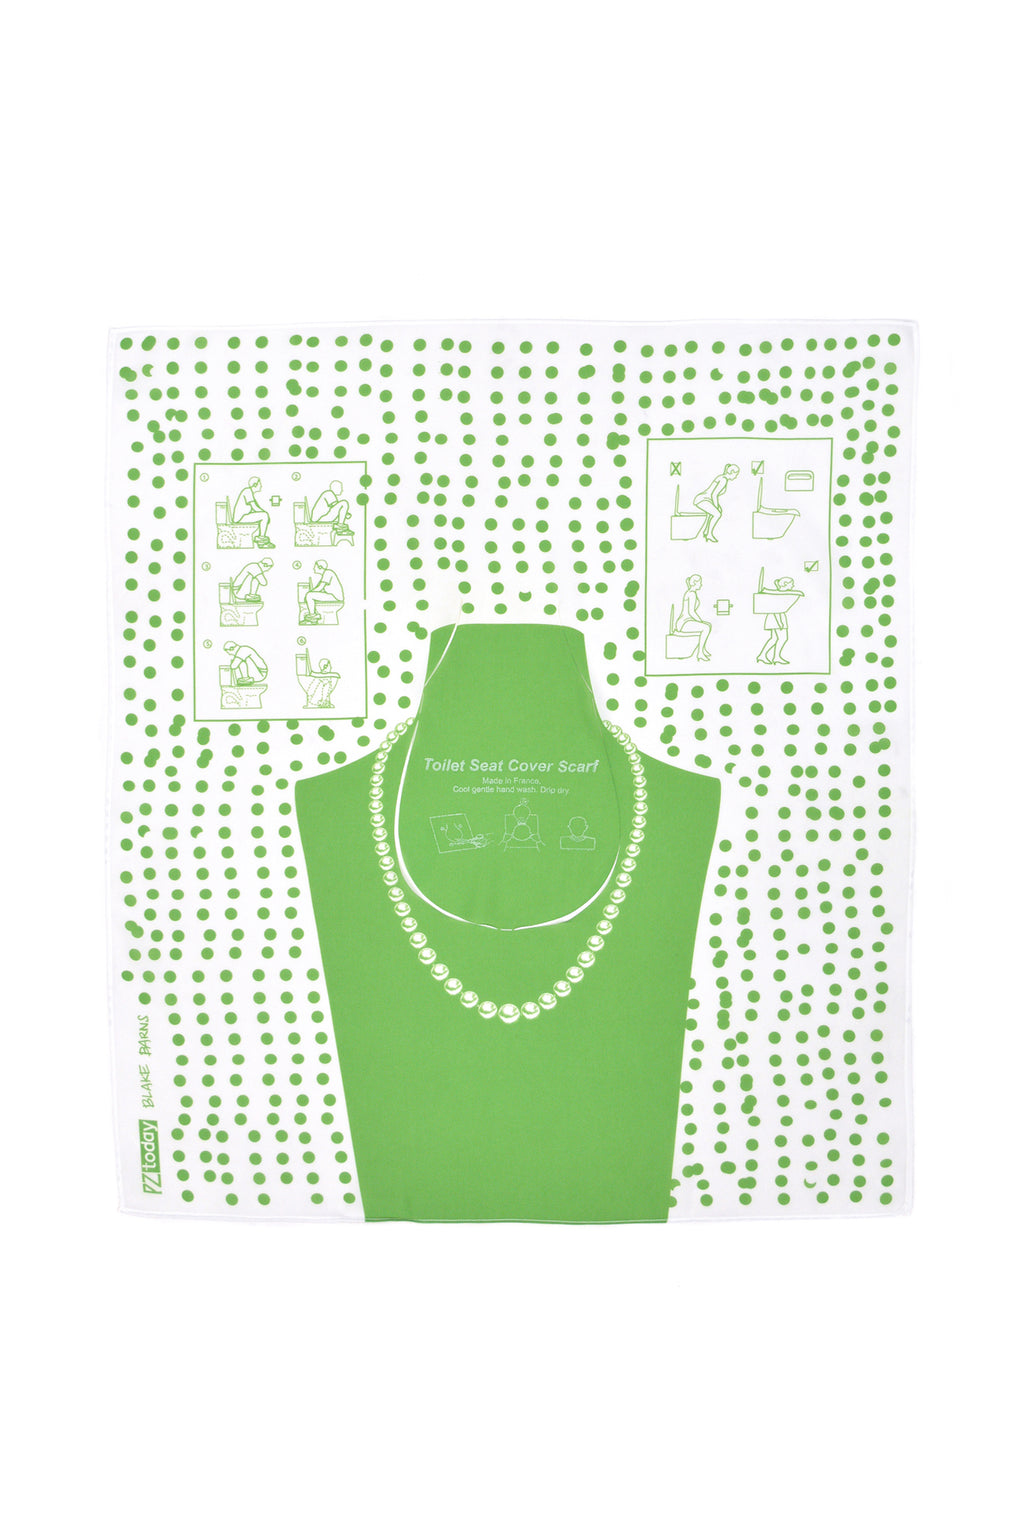 PZtoday© Toilet Seat Cover Scarf, Green